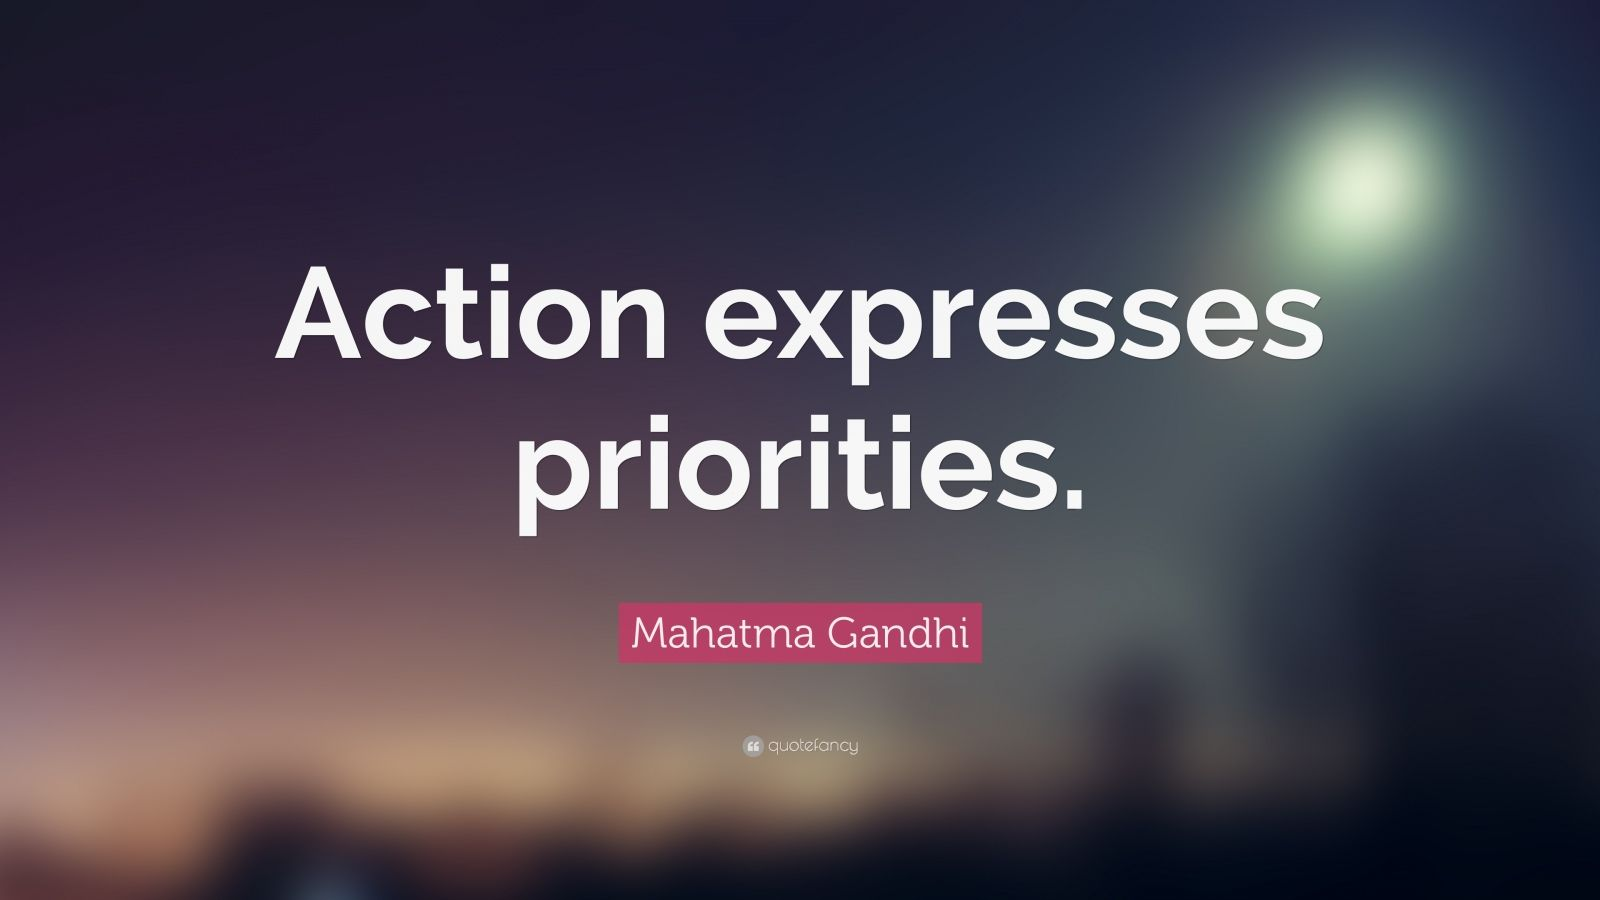 Gandhi Wallpapers With Quotes Mahatma Gandhi Quote Action Expresses Priorities 17